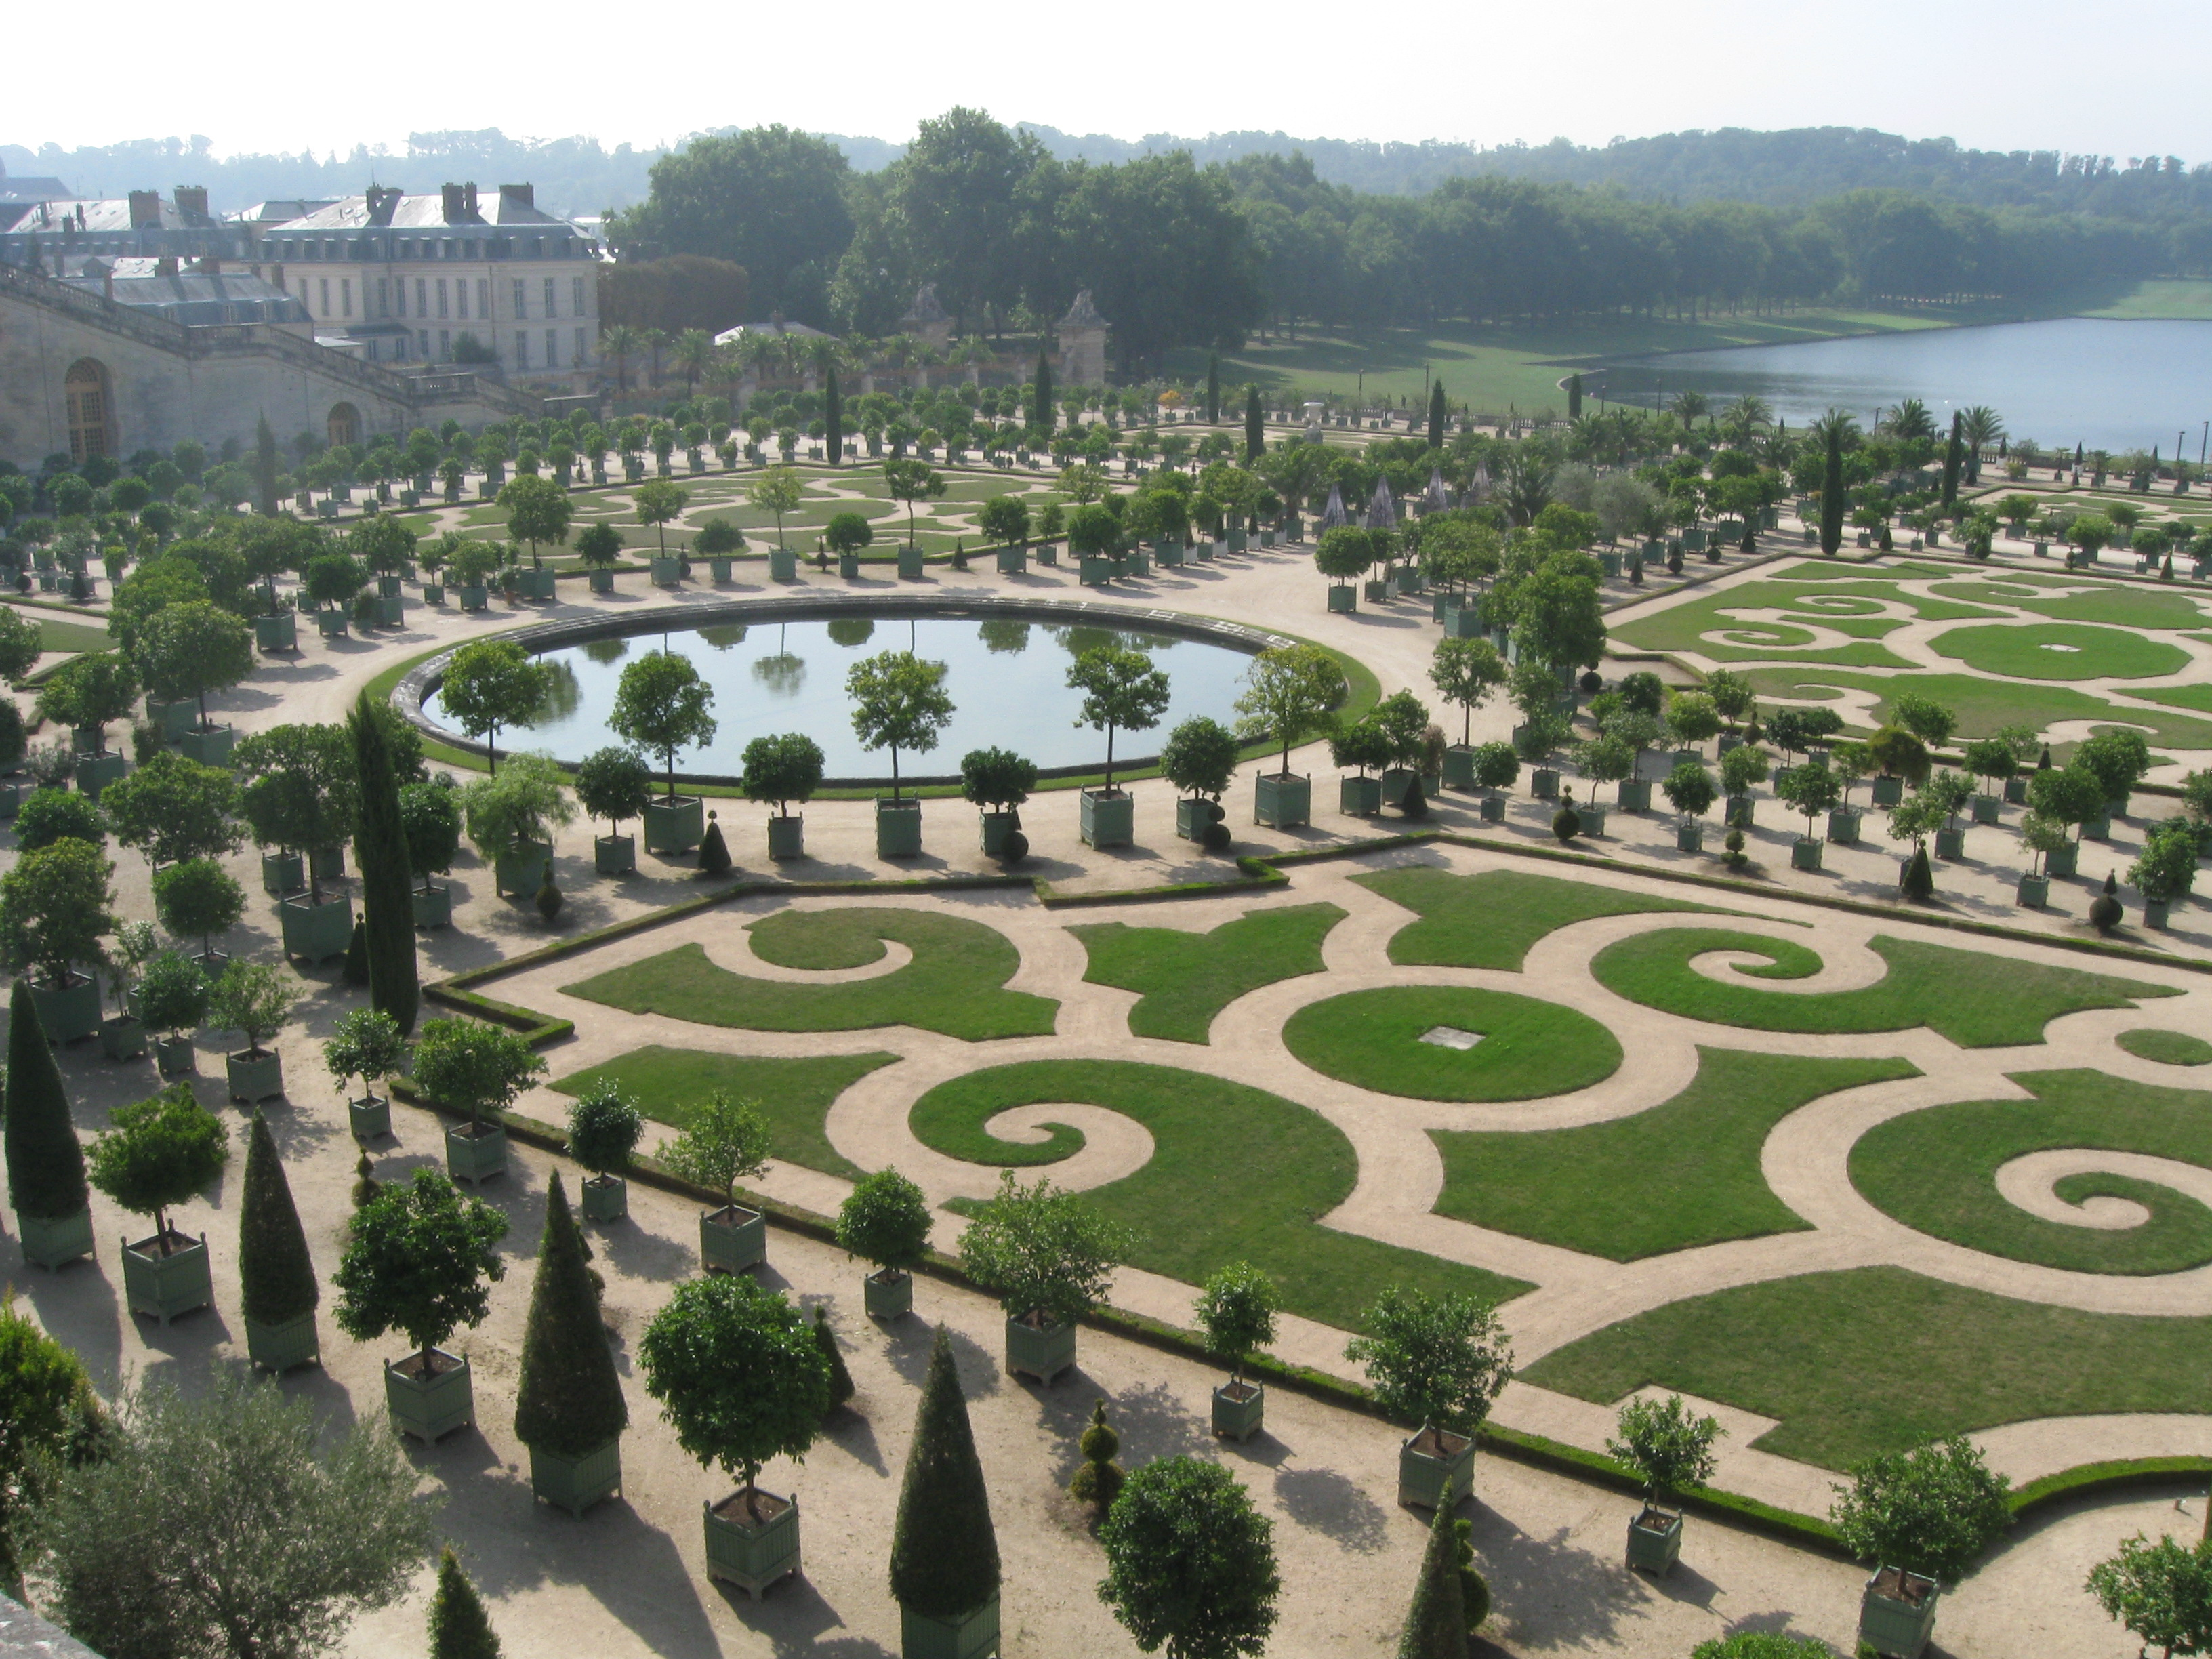 The versailles thesis